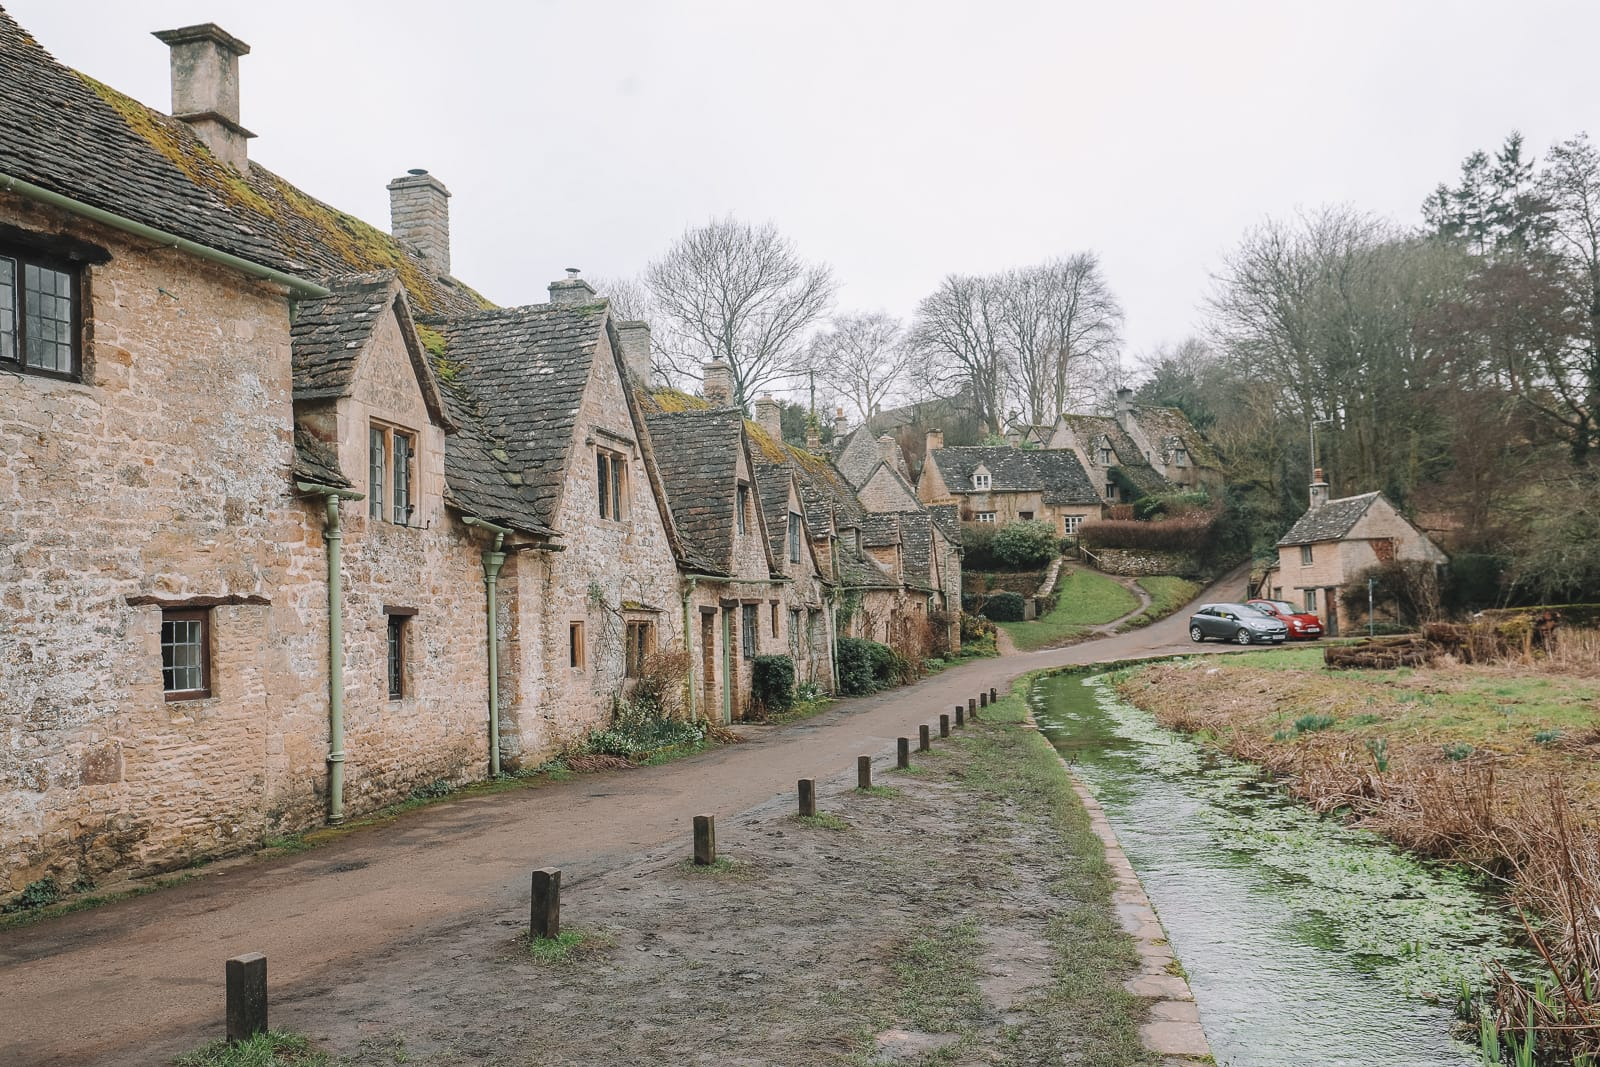 4 Villages And Towns You Have To Visit In The Cotswolds, England (2)